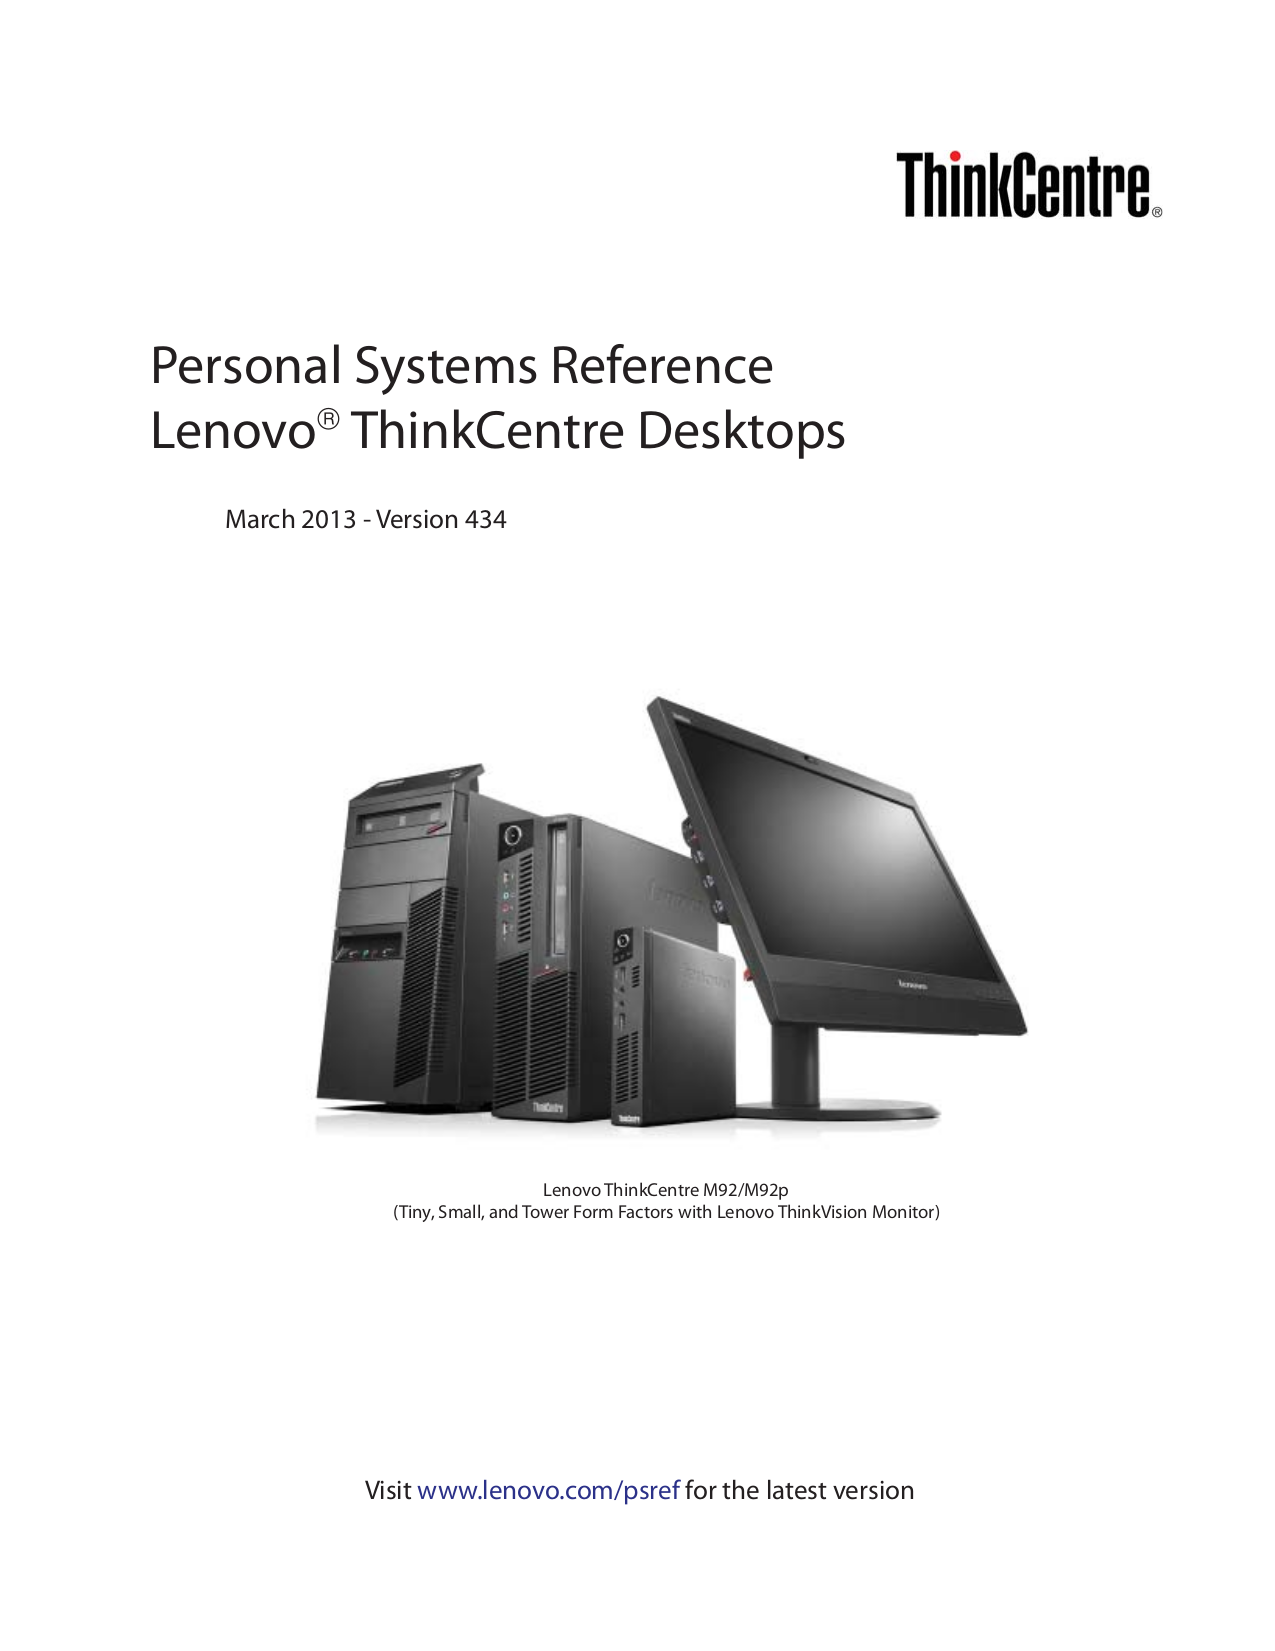 pdf for Lenovo Desktop ThinkCentre M91p 4518 manual